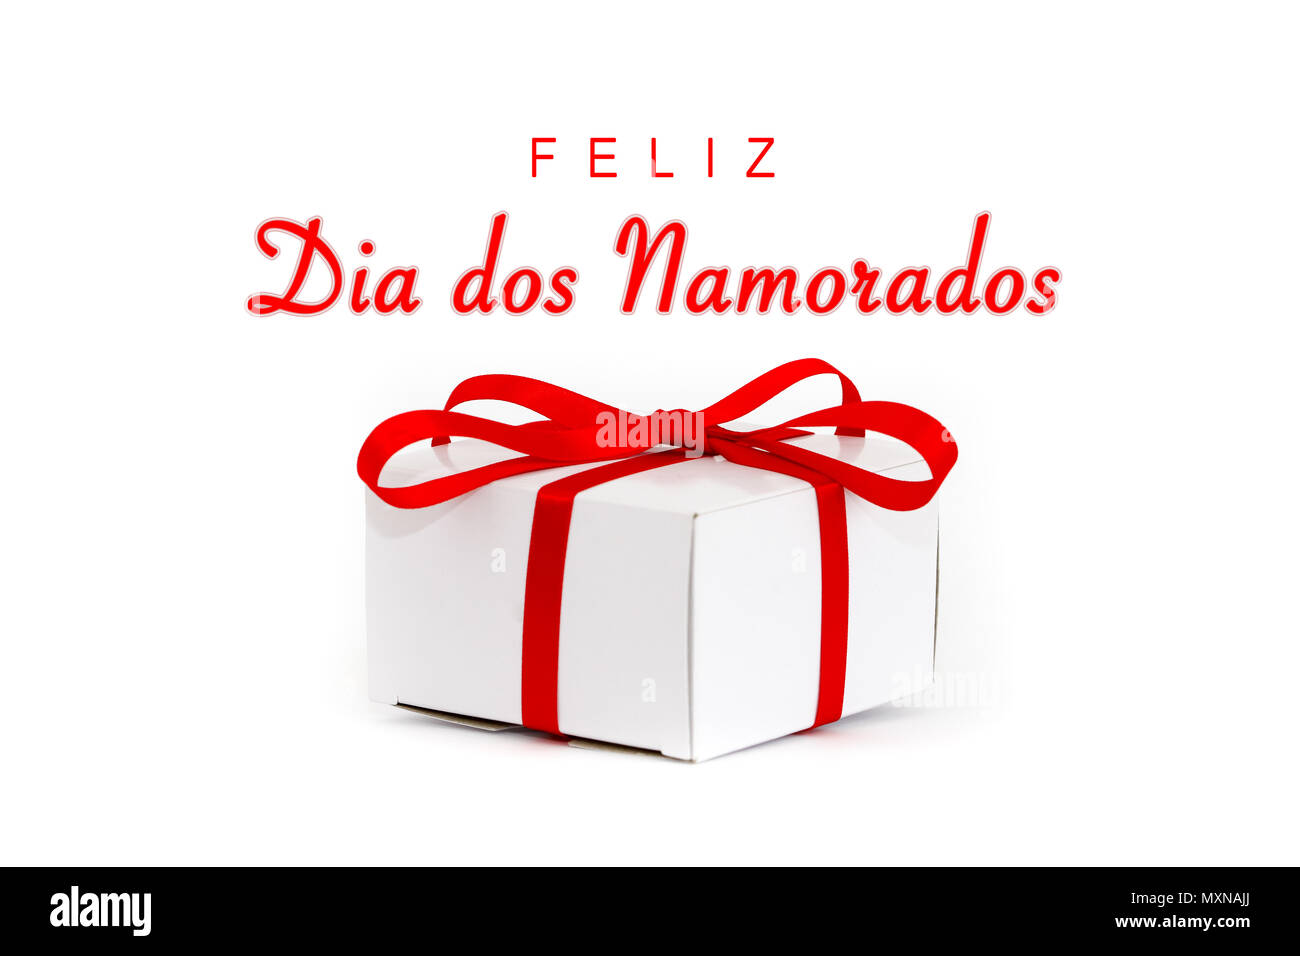 Feliz Dia Dos Namorados: Portuguese Language Cut Out Stock Images & Pictures